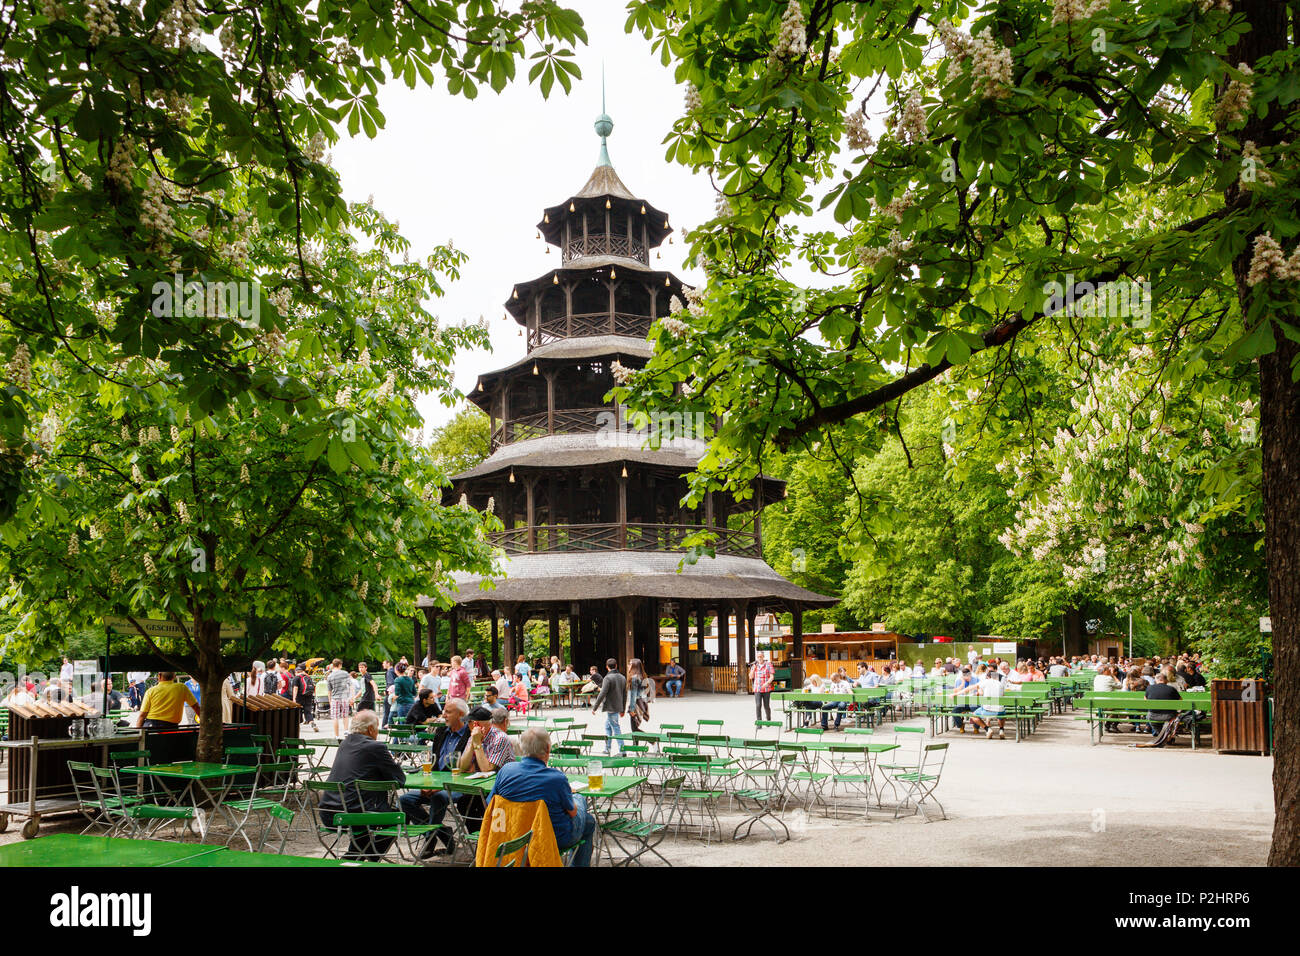 Beer garden and Chinese Tower in the English Garden, Munich, Upper Bavaria, Bavaria, Germany, Europe - Stock Image